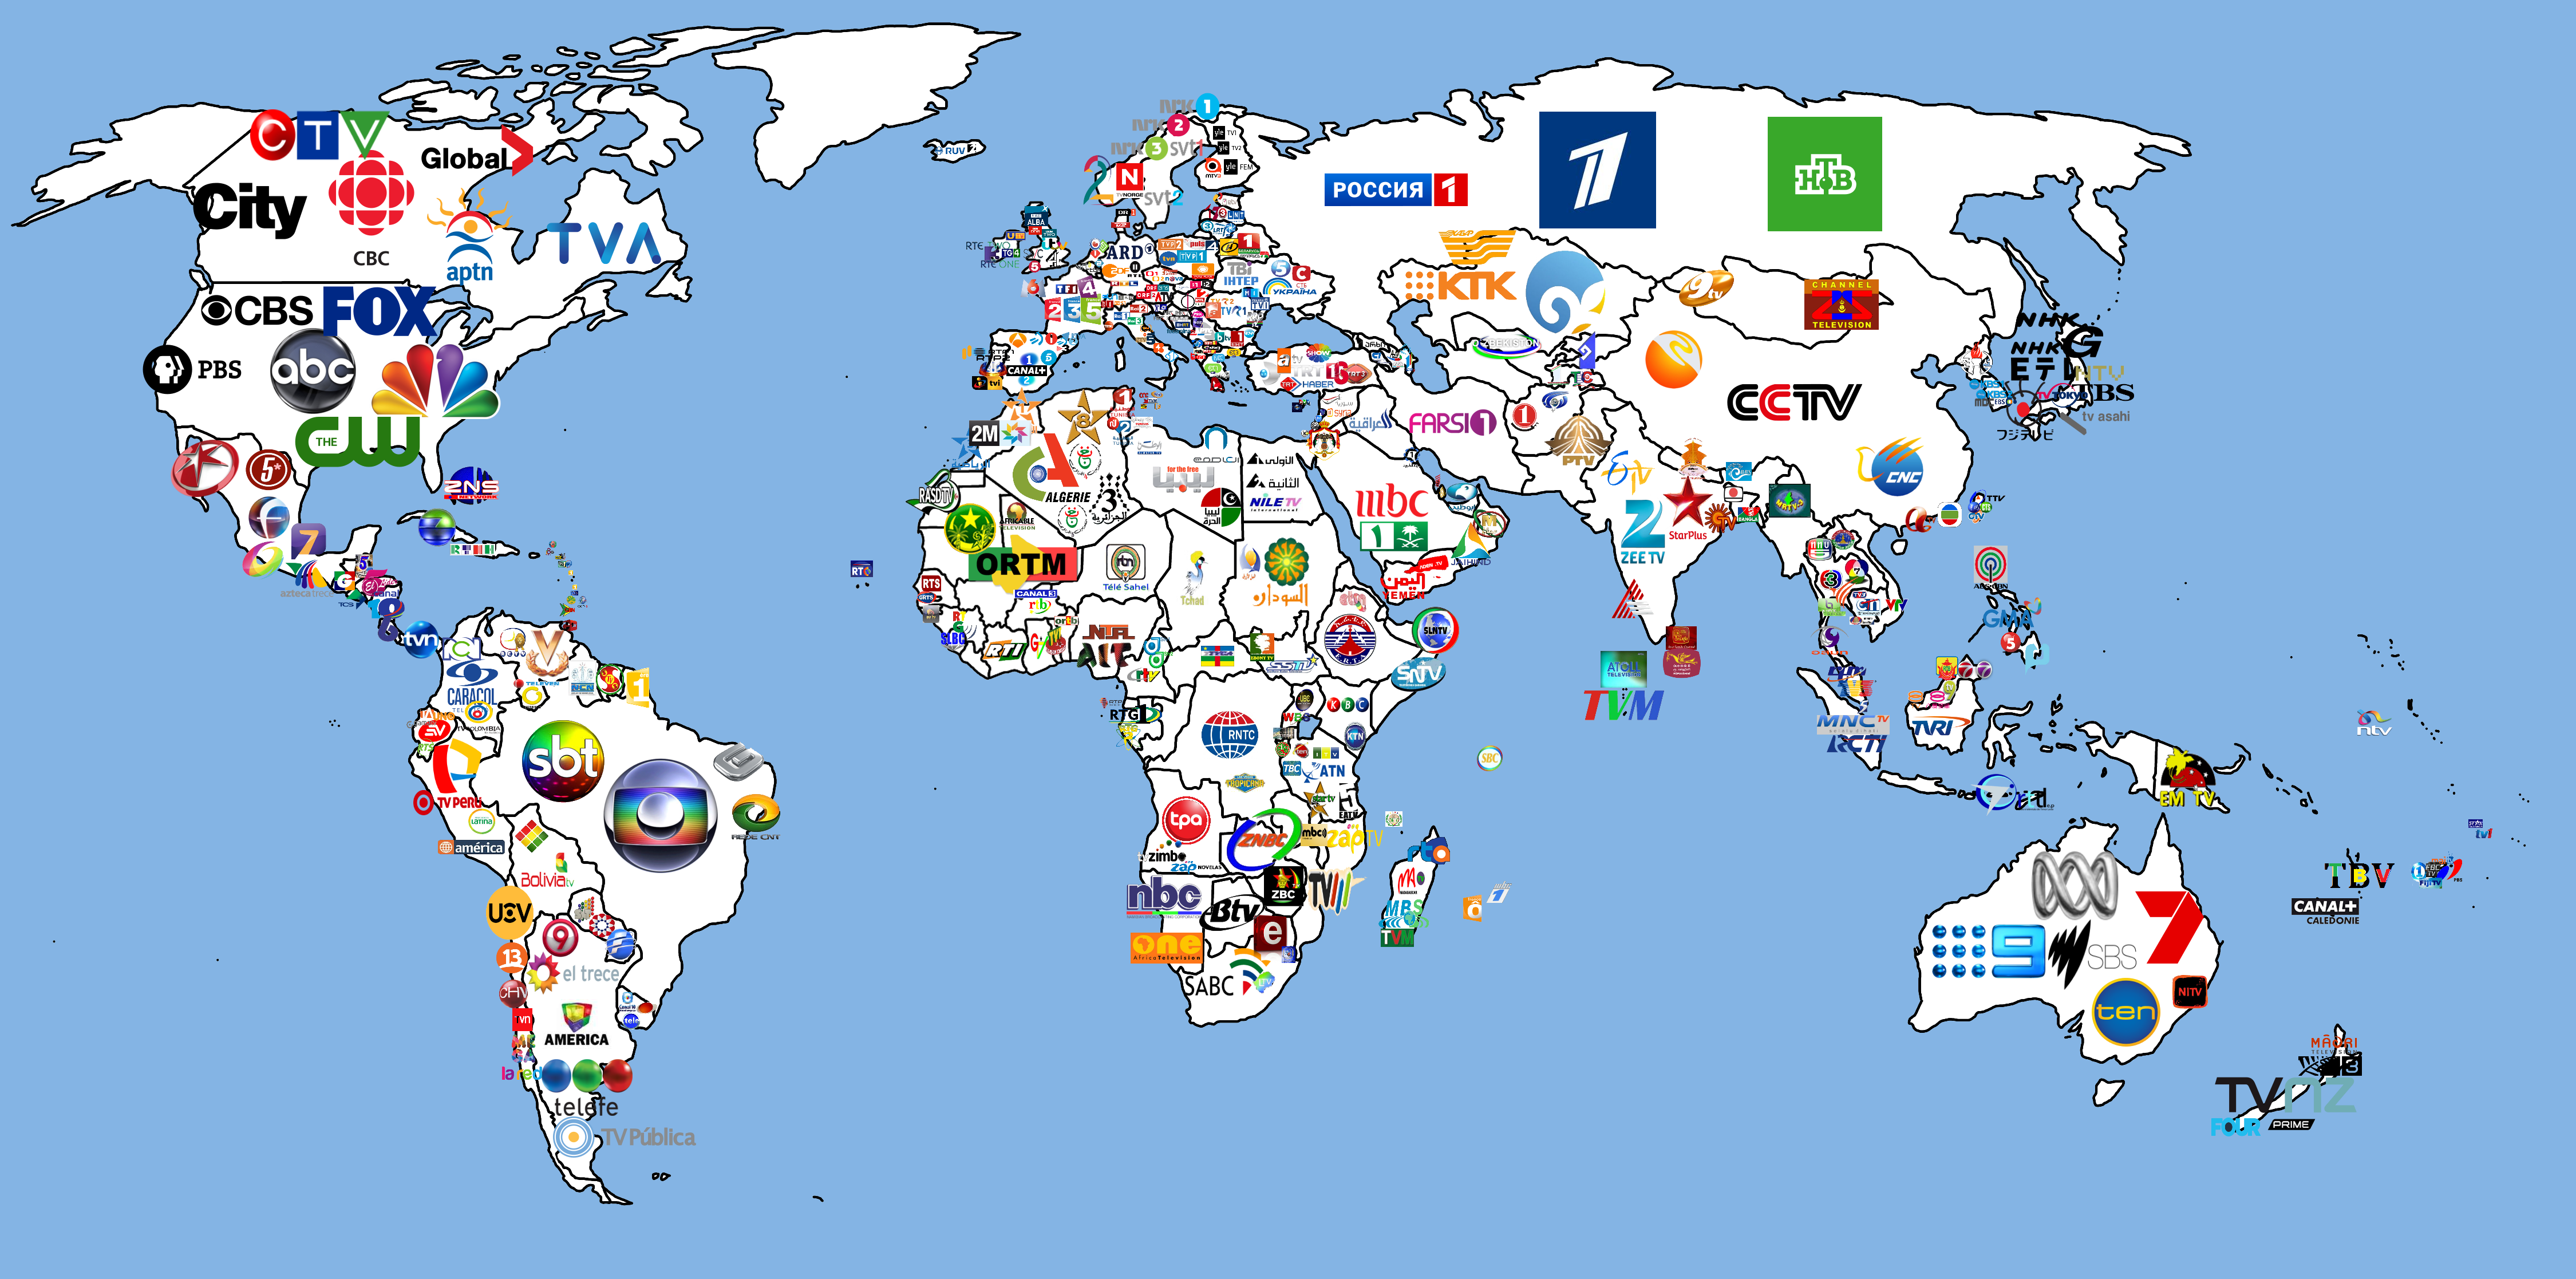 TV channel map of the World - Multi-Interest Blog on us mail map, french spoken map, wifi service map, p.a map, rich people map, d'hara map, x files map, 9gag map, stage map, living room map, xbox live map, mobile coverage map, gps unit map, ntsc map, dc nightlife map, pmp map, sat map, ai map, region code map,